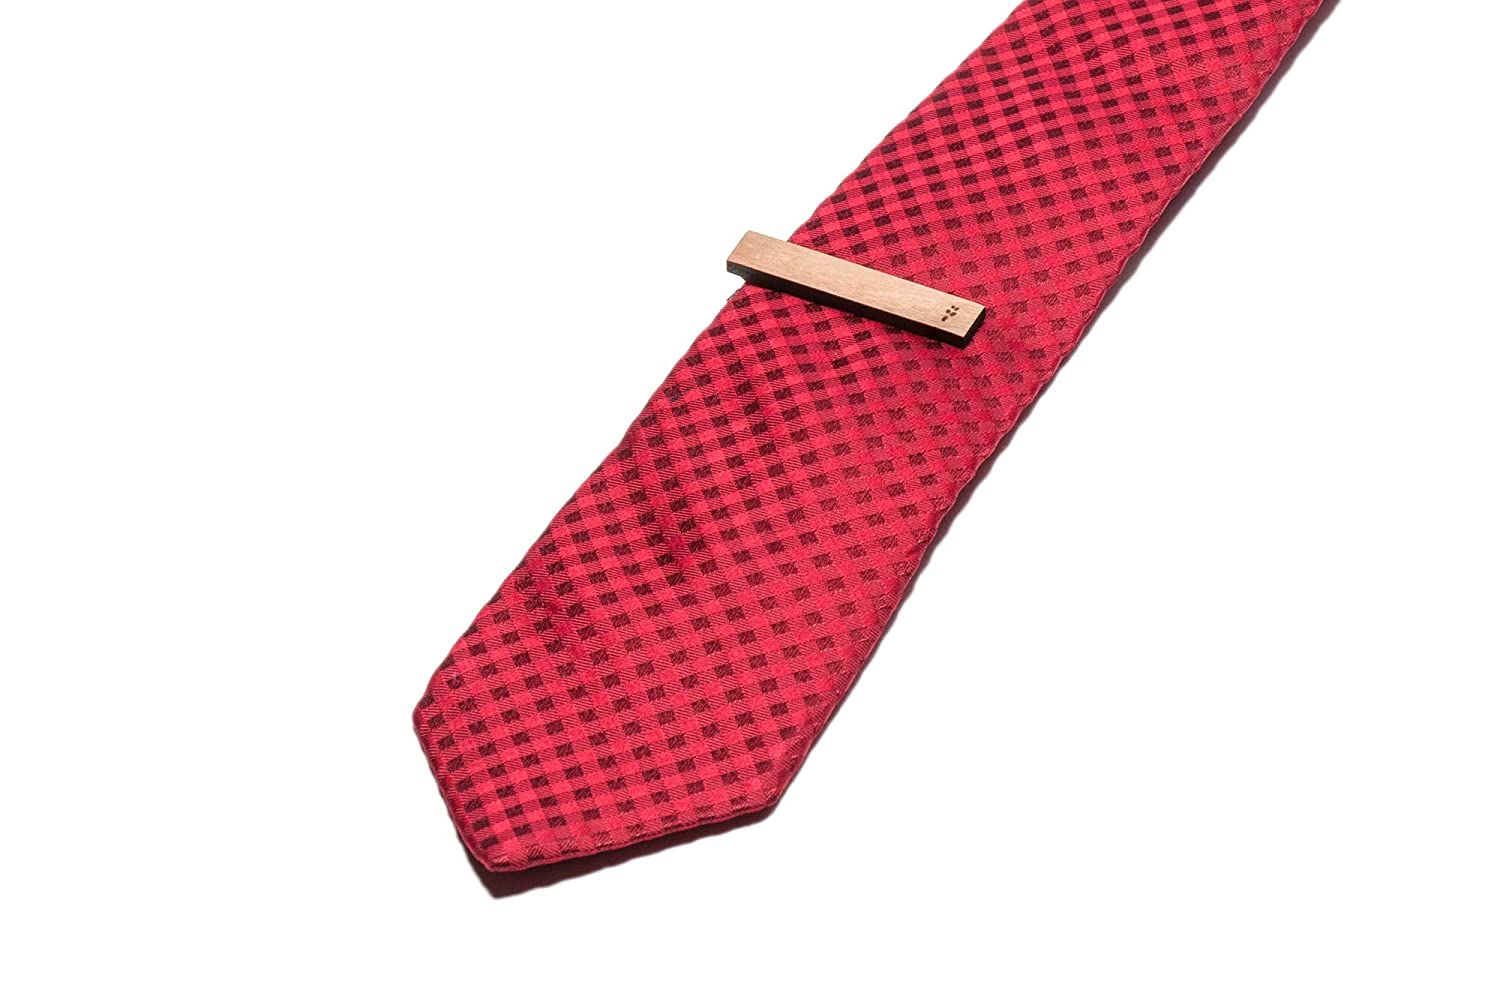 Cherry Wood Tie Bar Engraved in The USA Wooden Accessories Company Wooden Tie Clips with Laser Engraved Potted Plant Design